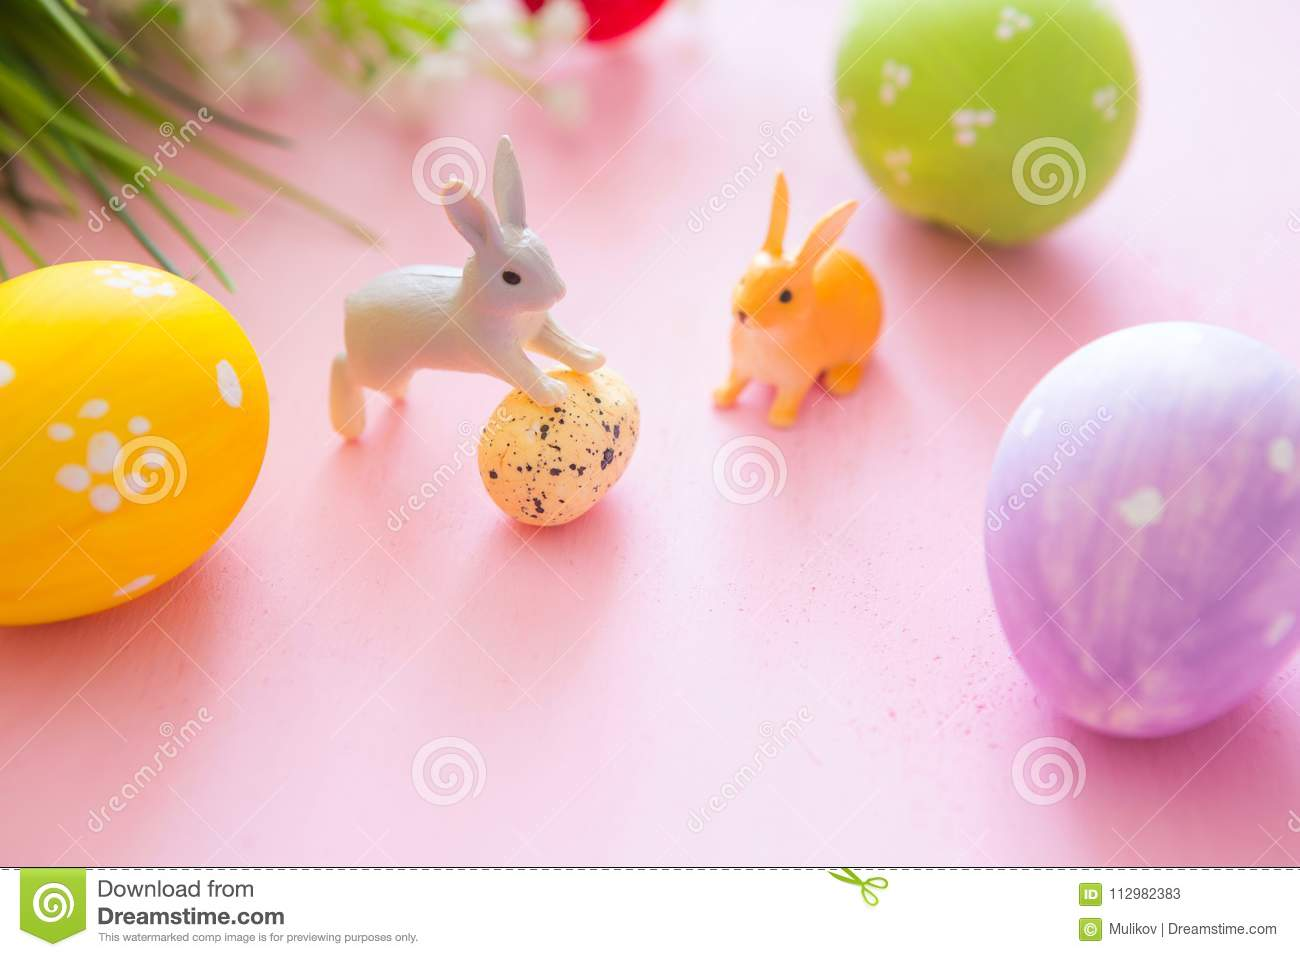 Easter rabbit with Easter eggs on wooden background. Close-up